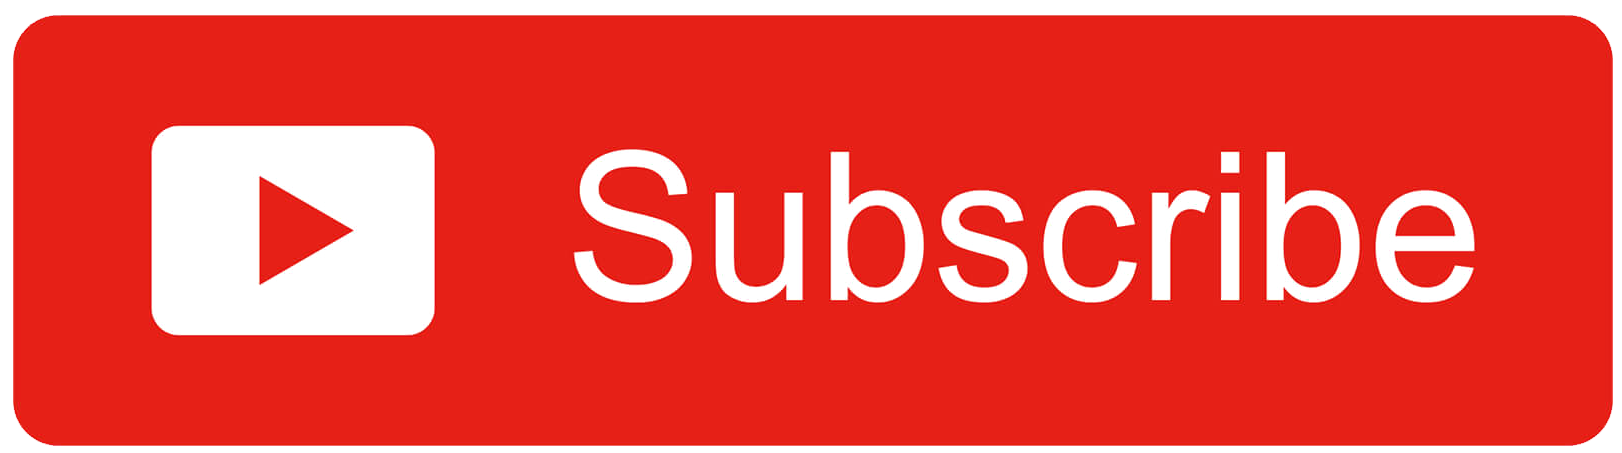 Free-YouTube-Subscribe-Button-Download-Design-Inspiration-By-AlfredoCreates.png